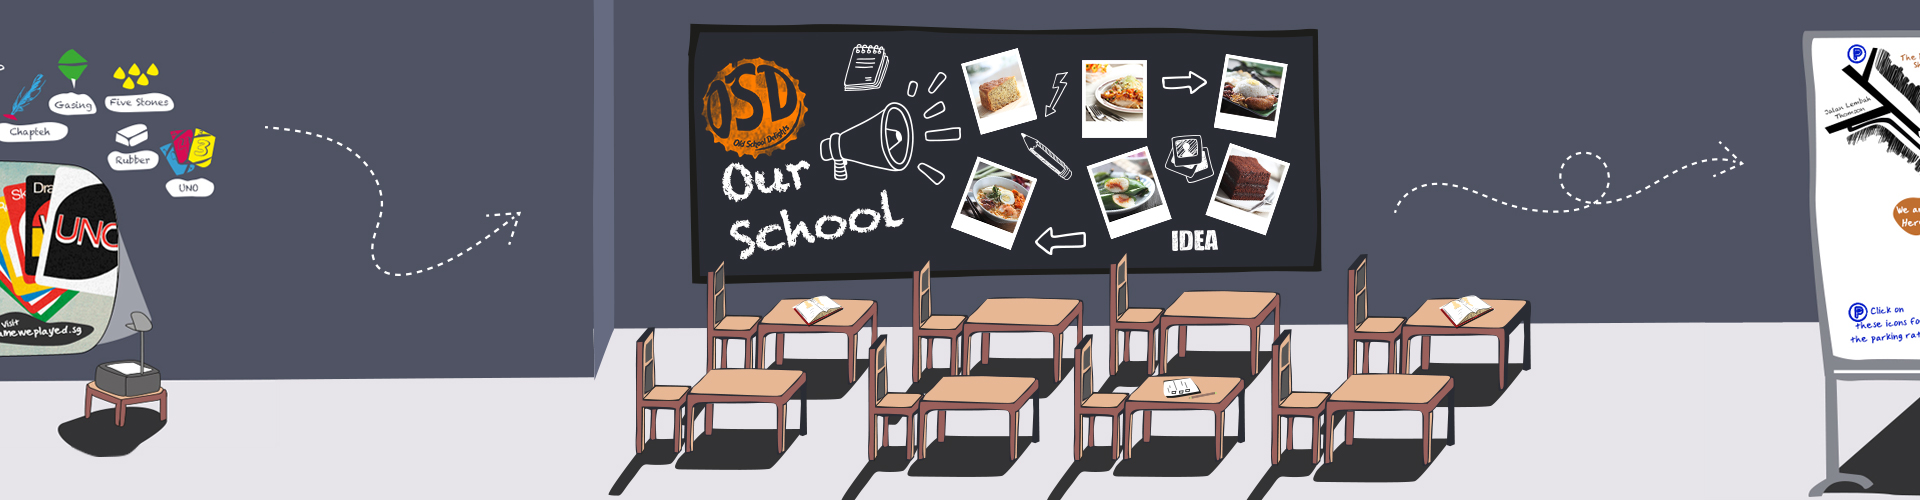 banner-1920x500-ourschool3